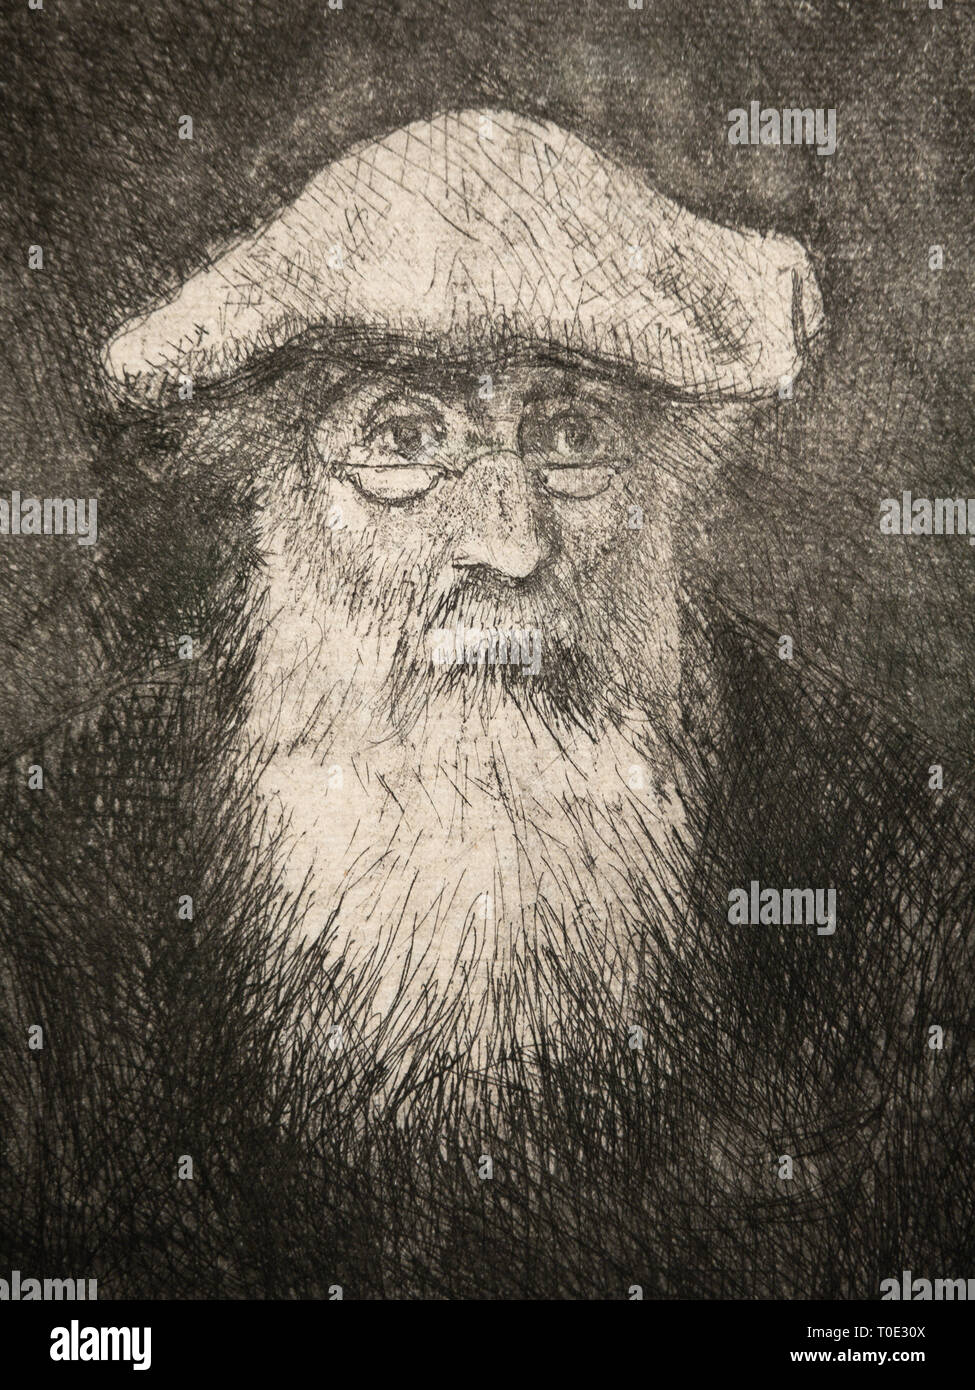 Self Portrait Camille Pissarro, Etching, aquatint, circa 1890, detail. - Stock Image